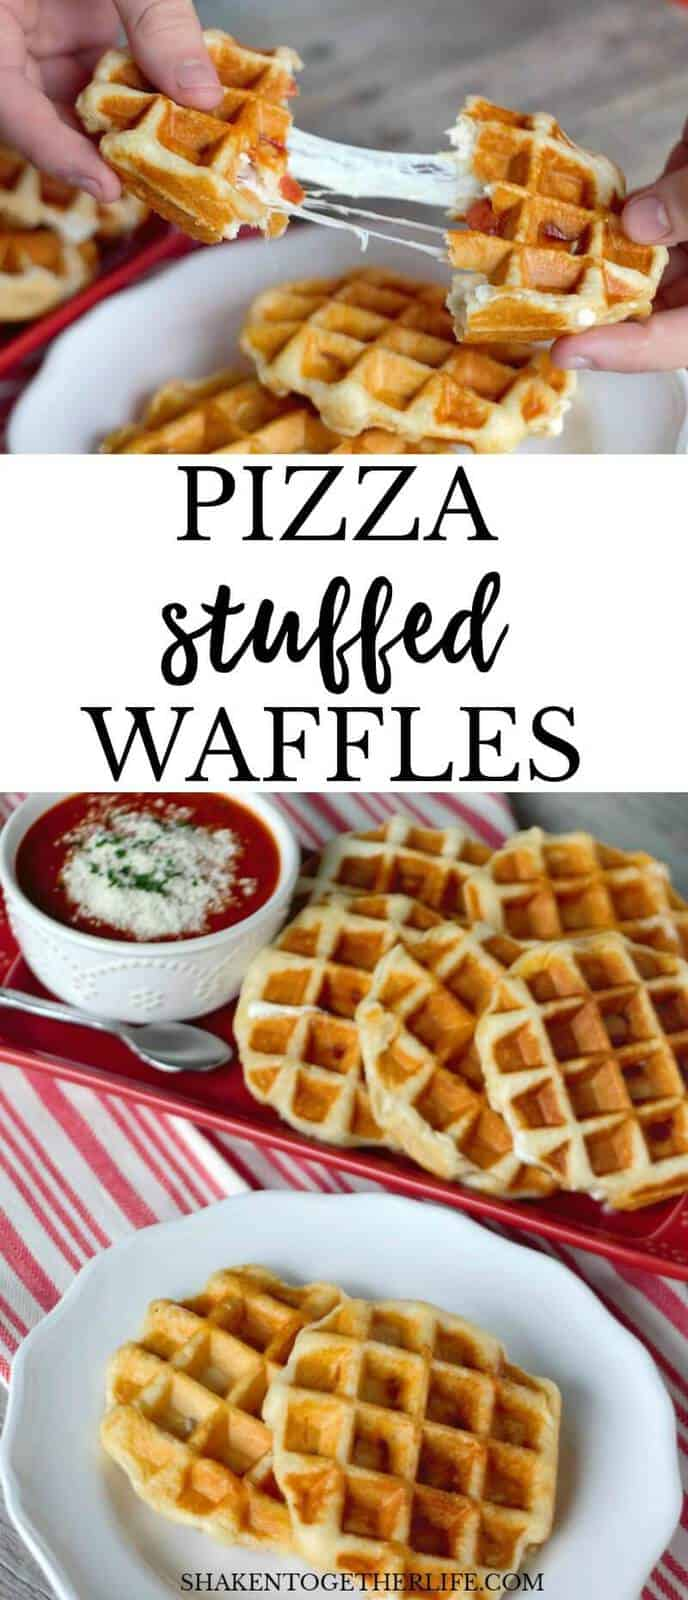 Pizza Stuffed Waffles! Dinner doesn't get easier than this - 4 ingredients, refrigerator biscuits and a waffle maker! This simply delicious dinner of pizza waffles is done in about 10 minutes!